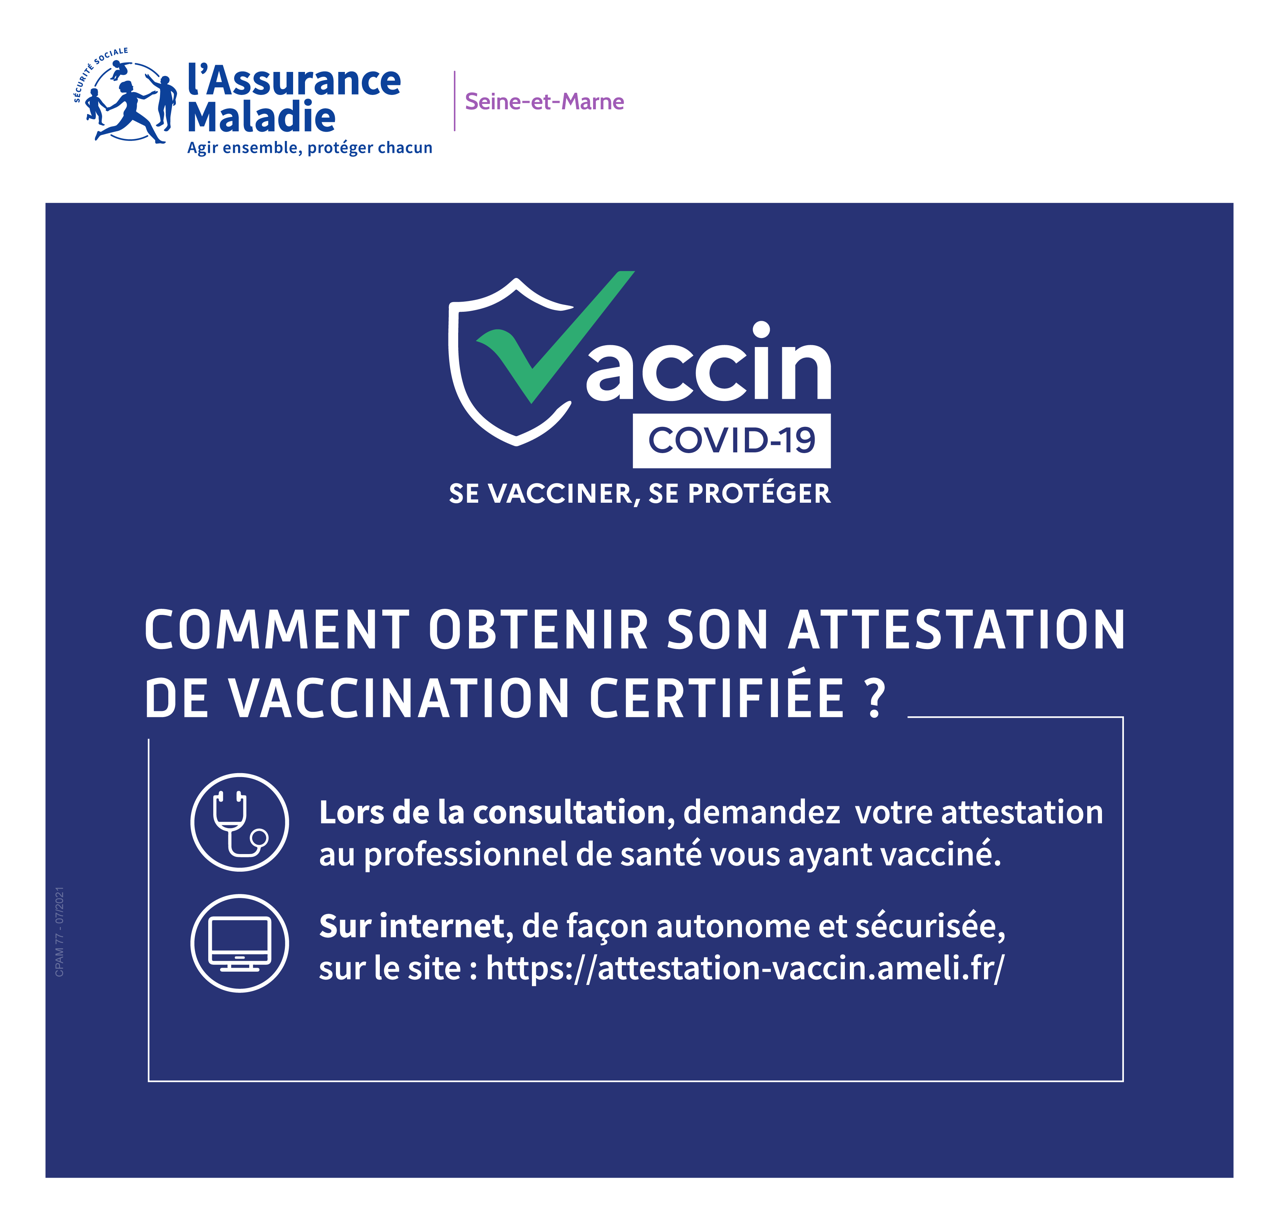 How to obtain a certified vaccination certificate?